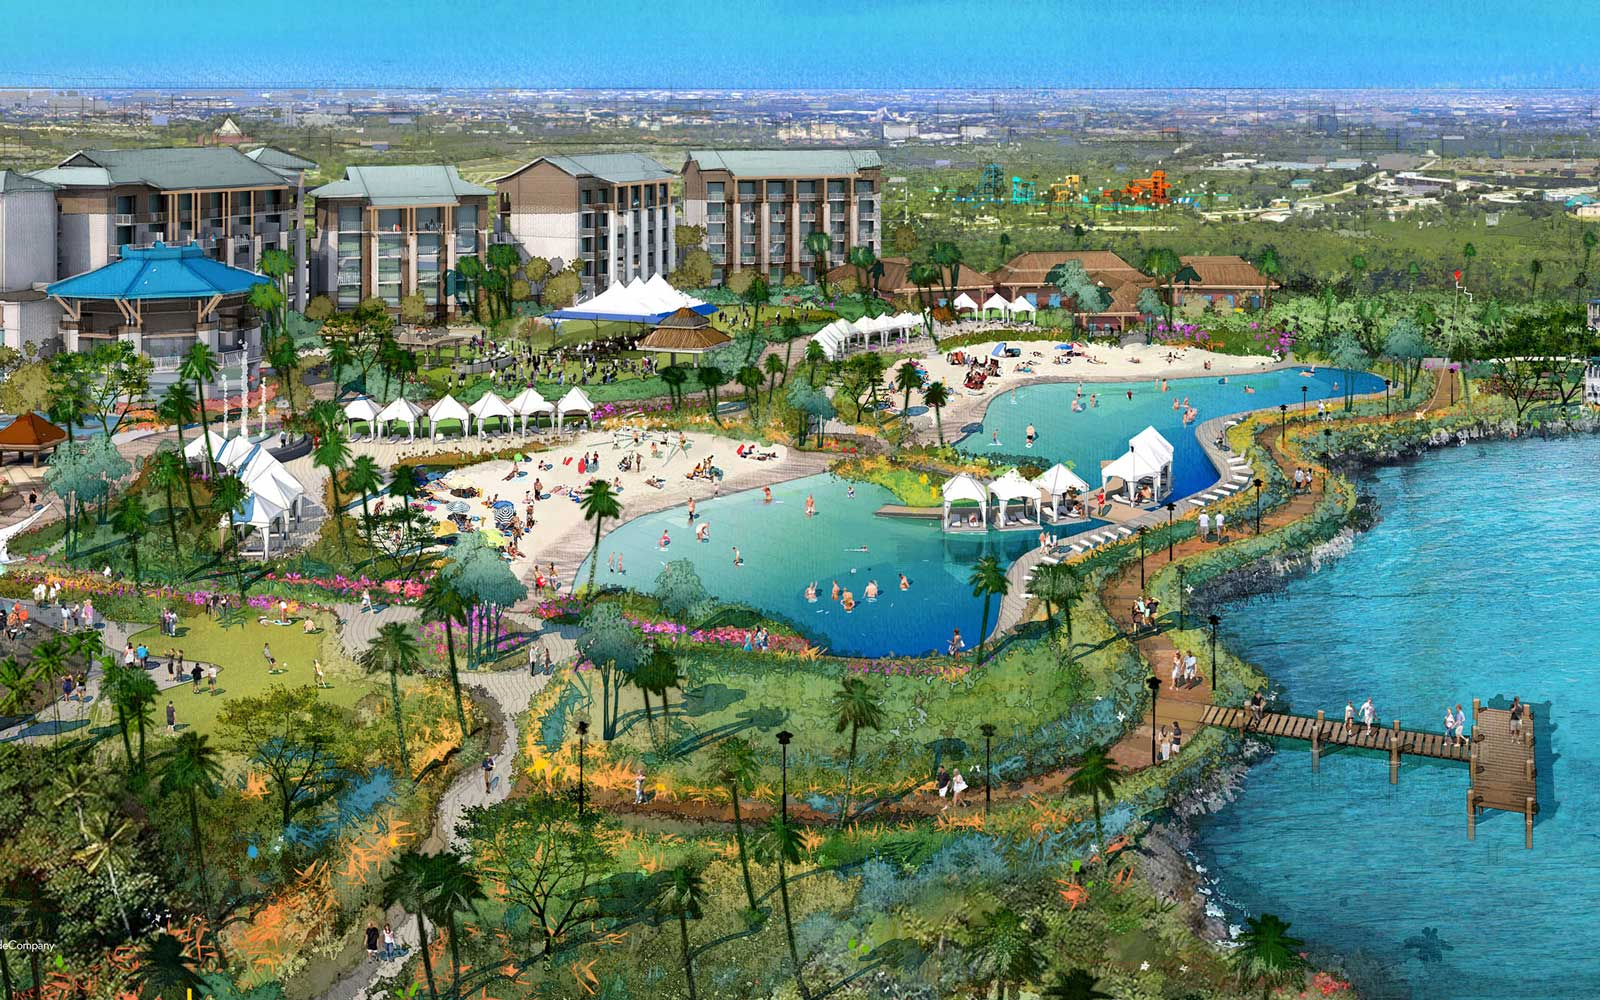 Jimmy Buffett's New Margaritaville Orlando Resort Will Open in January